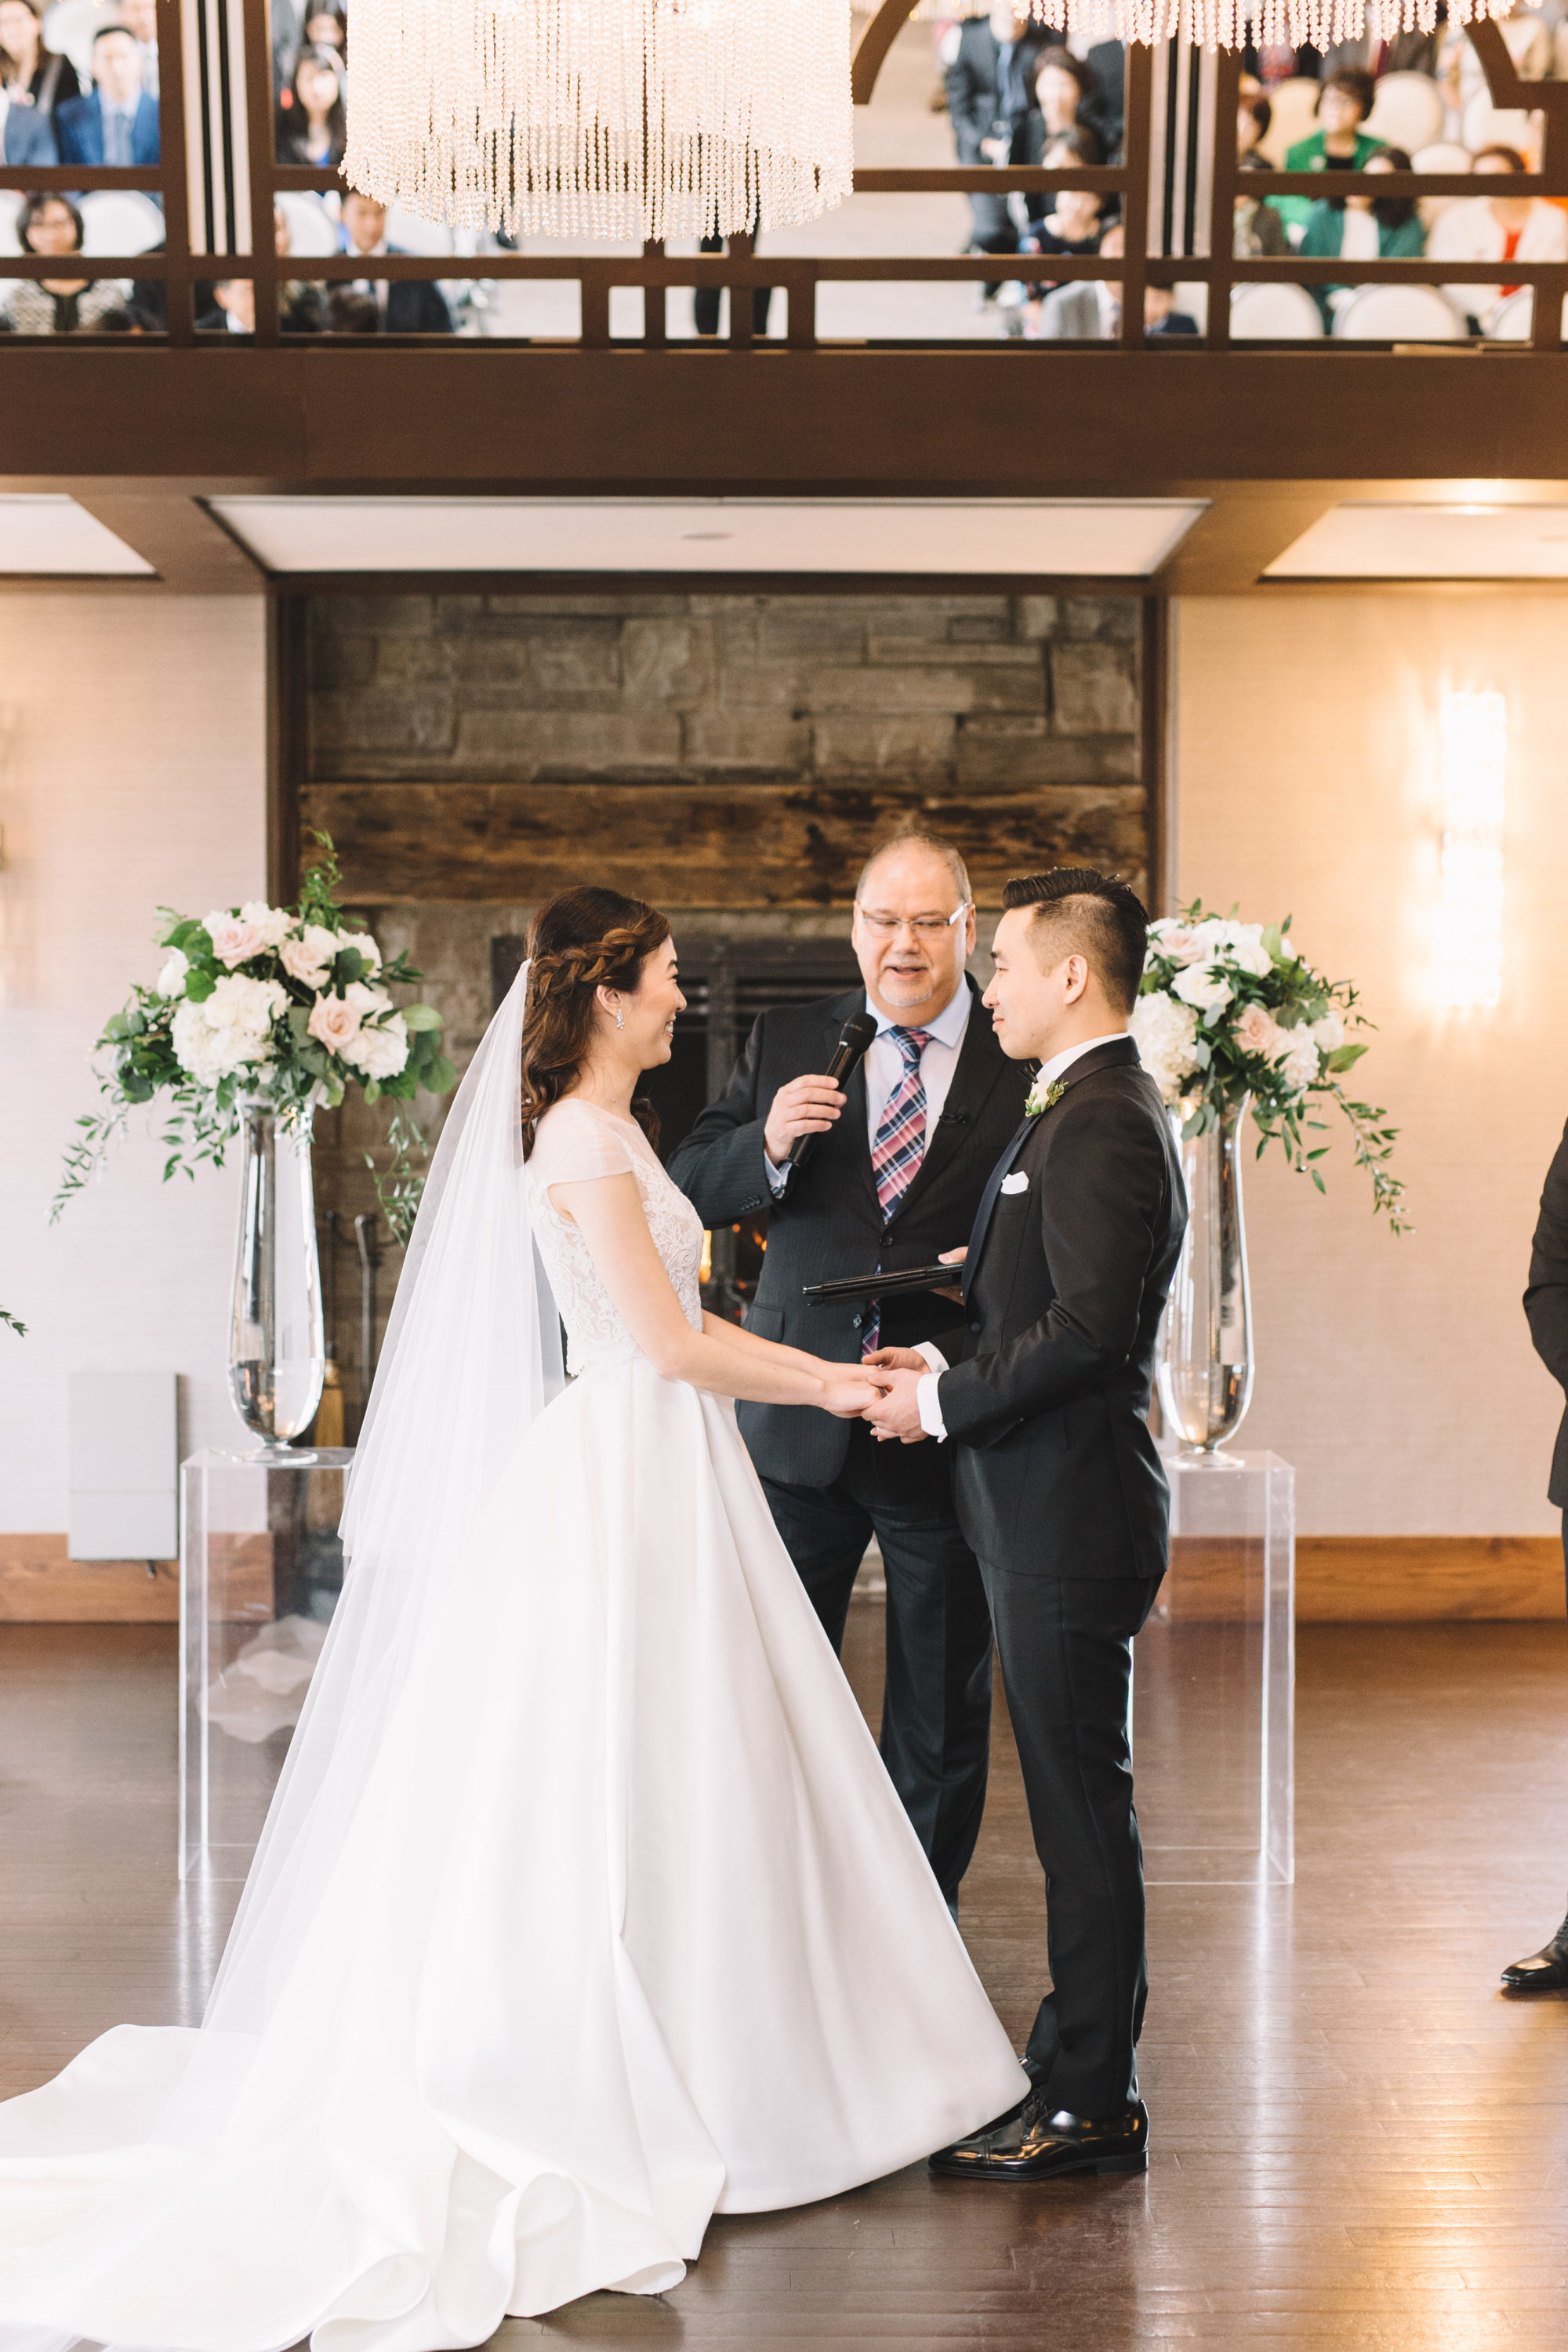 Ceremony at Whistle Bear Golf Club